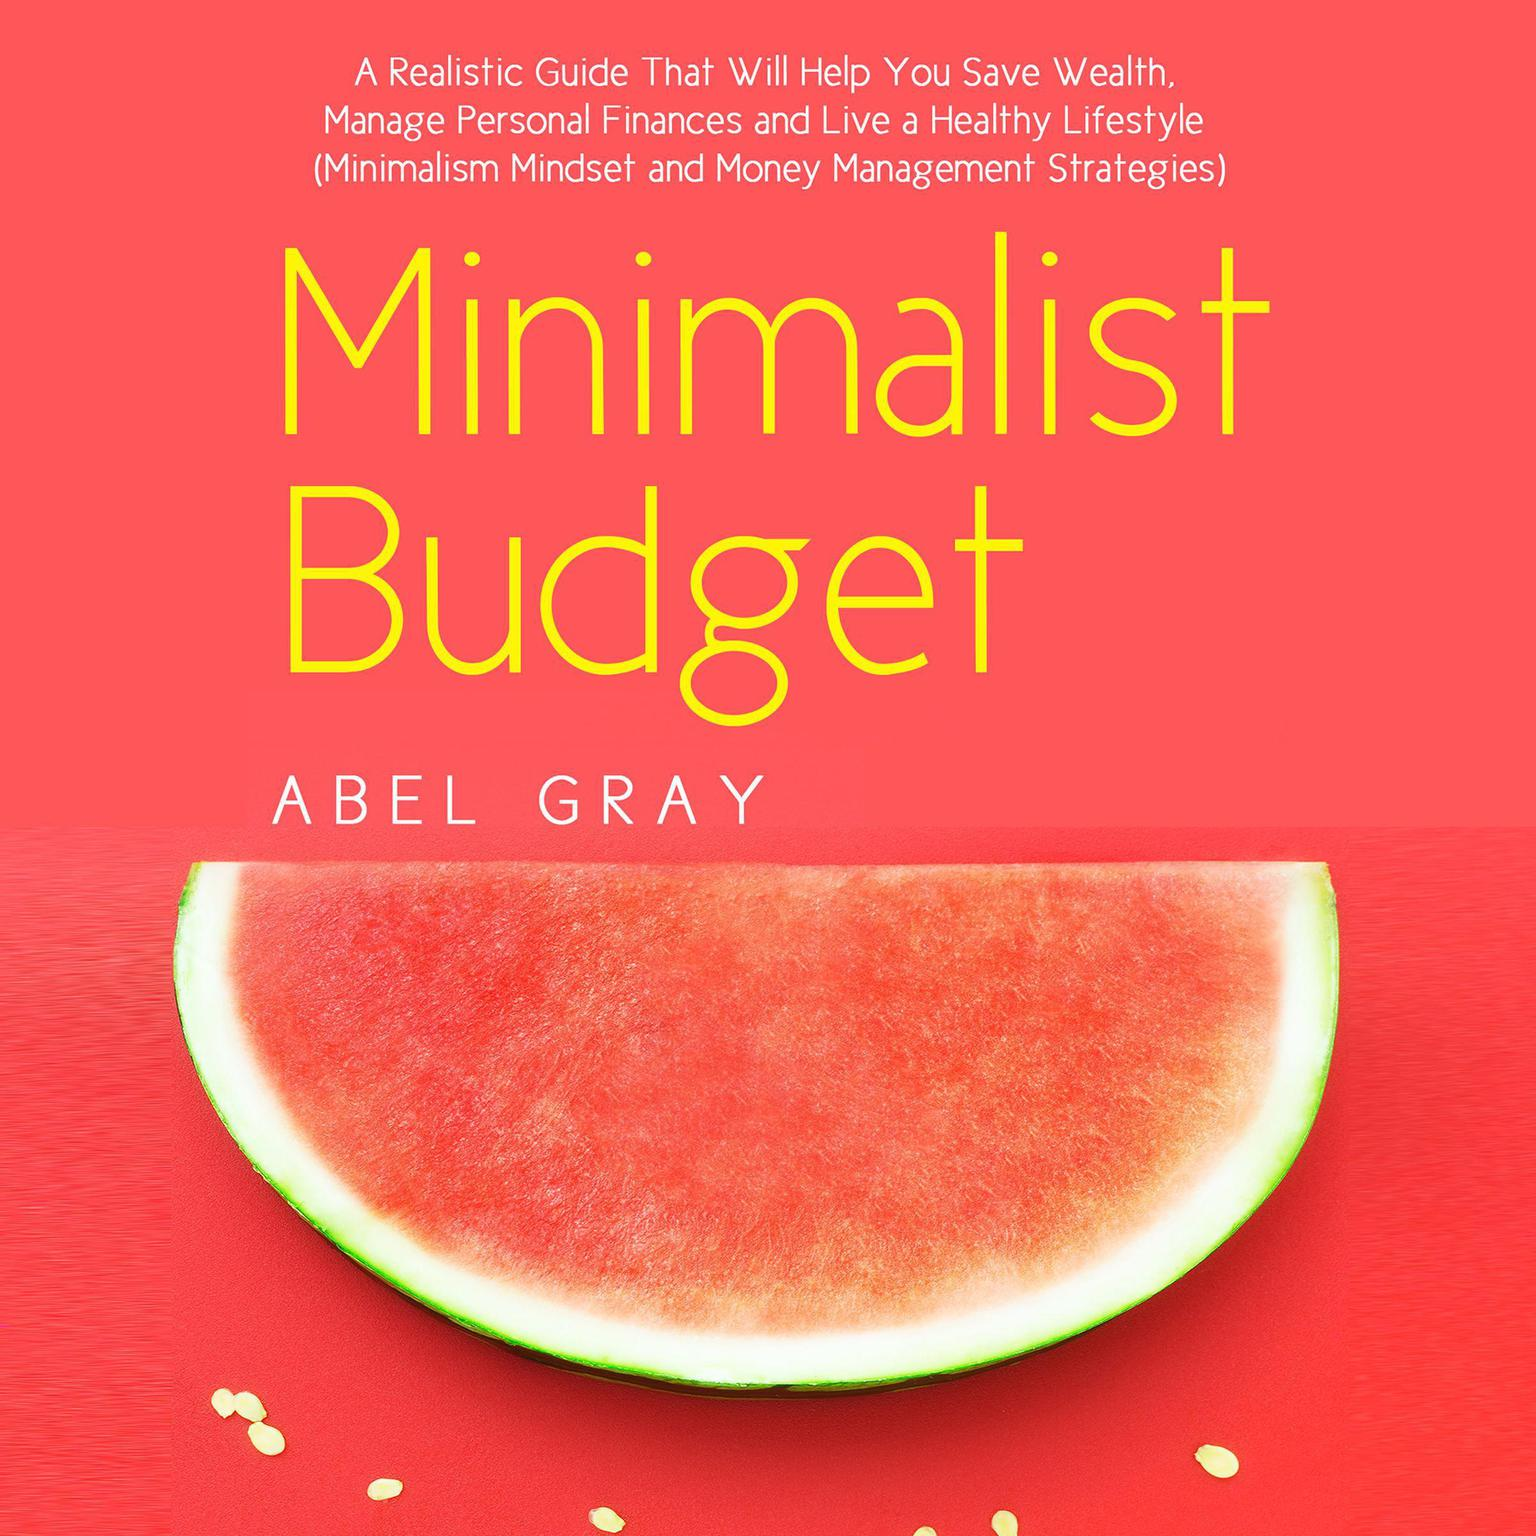 Minimalist Budget: The Realistic Guide That Will Help You Save Wealth, Manage Personal Finances and Live a Healthy Lifestyle (Minimalism Mindset and Money Management Strategies): The Realistic Guide That Will Help You Save Wealth, Manage Personal Finances and Live a Healthy Lifestyle (Minimalism Mindset and Money Management Strategies) Audiobook, by Abel Gray